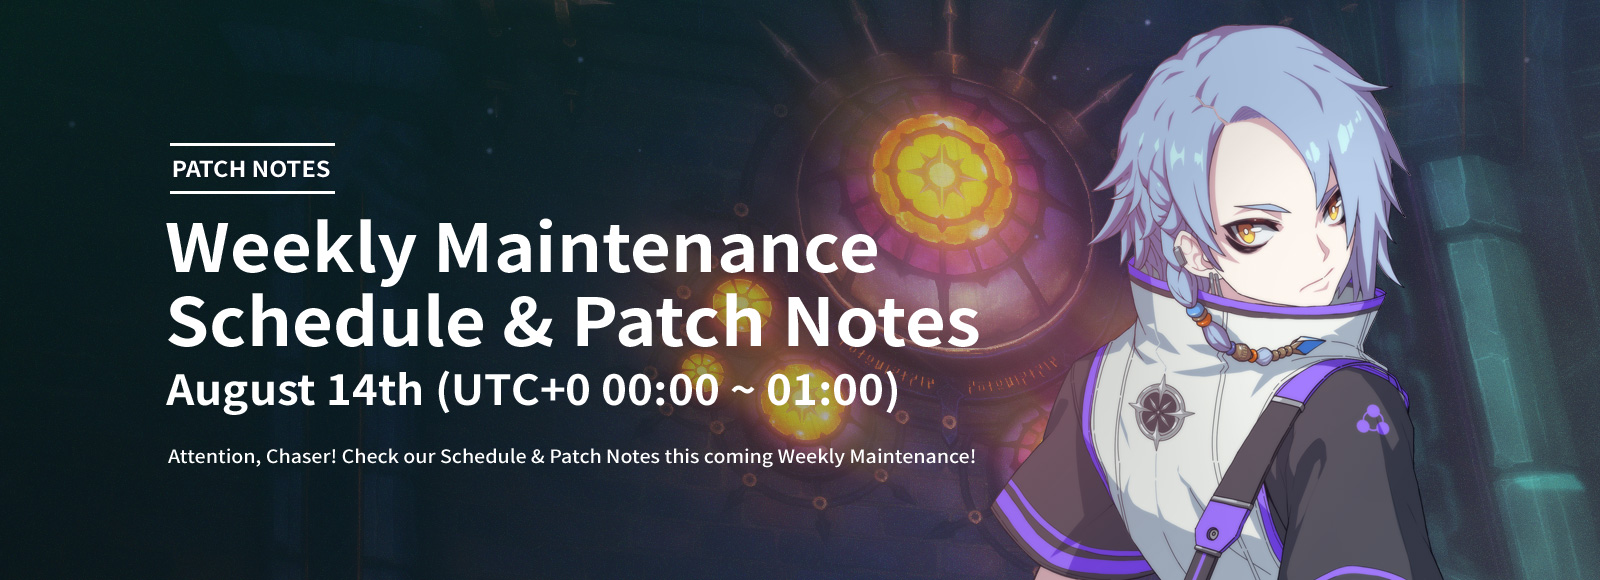 August 14th Weekly Maintenance Schedule & Patch Notes